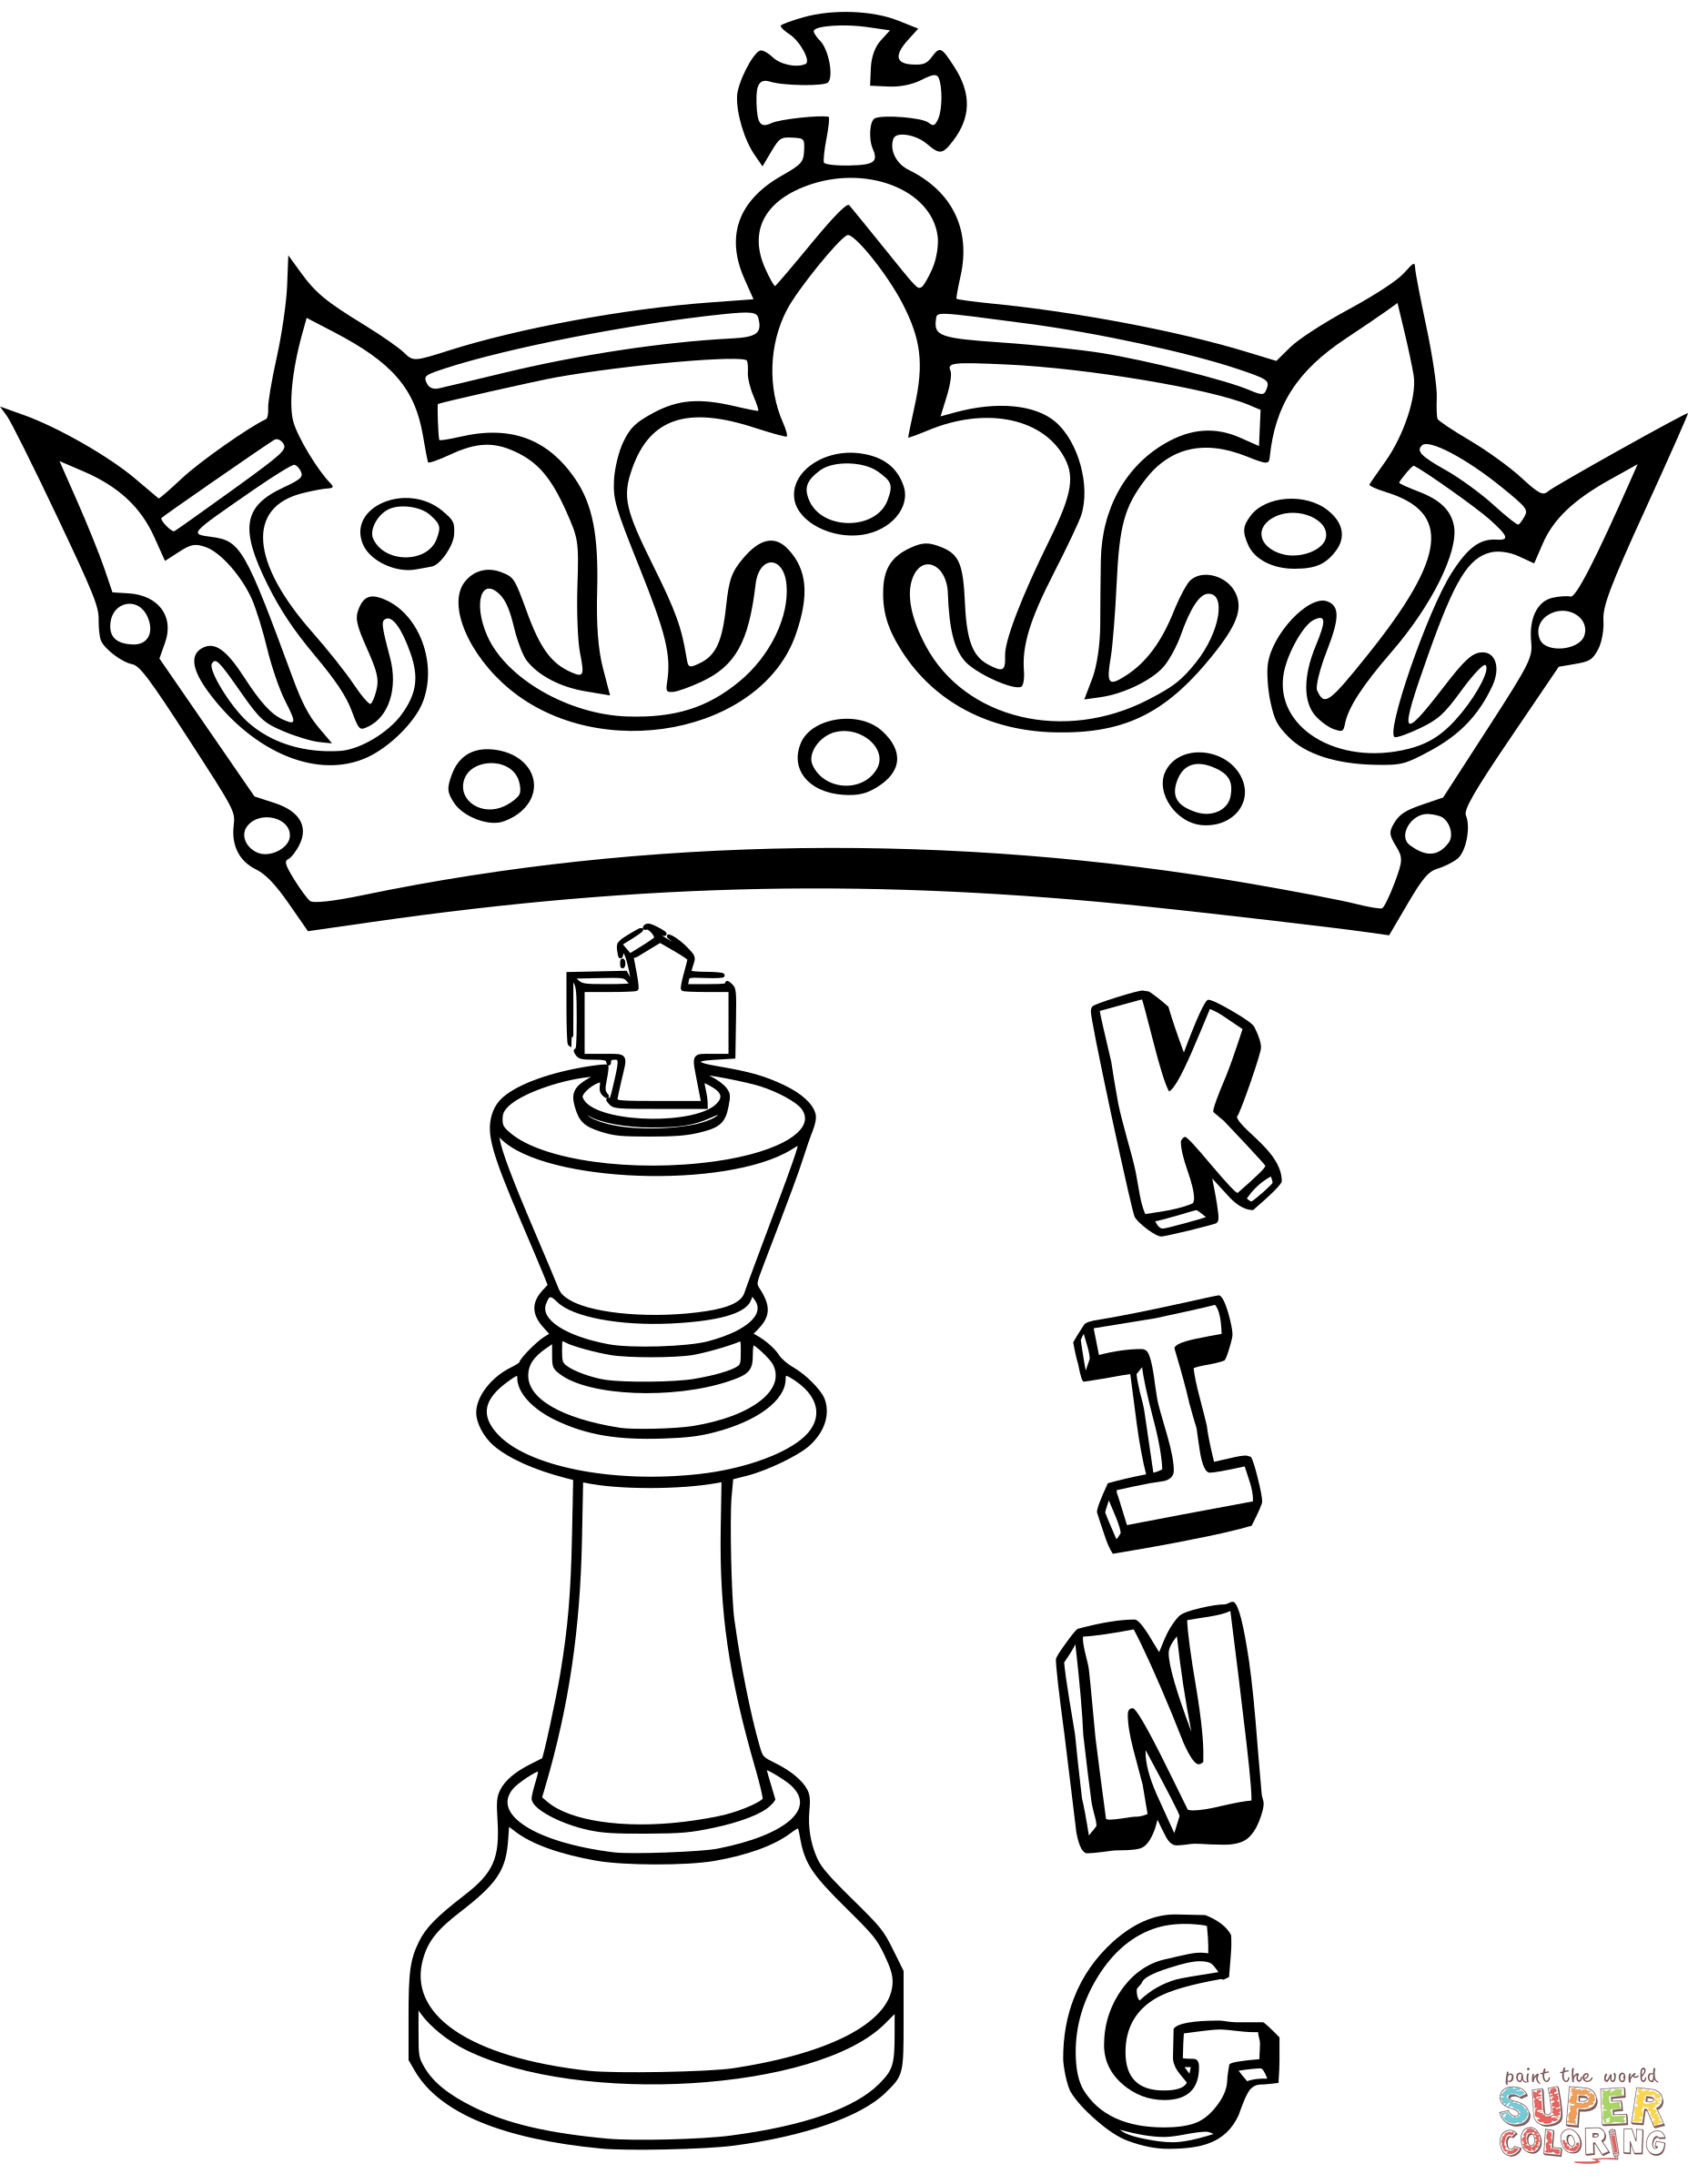 King Chess Piece Coloring Page